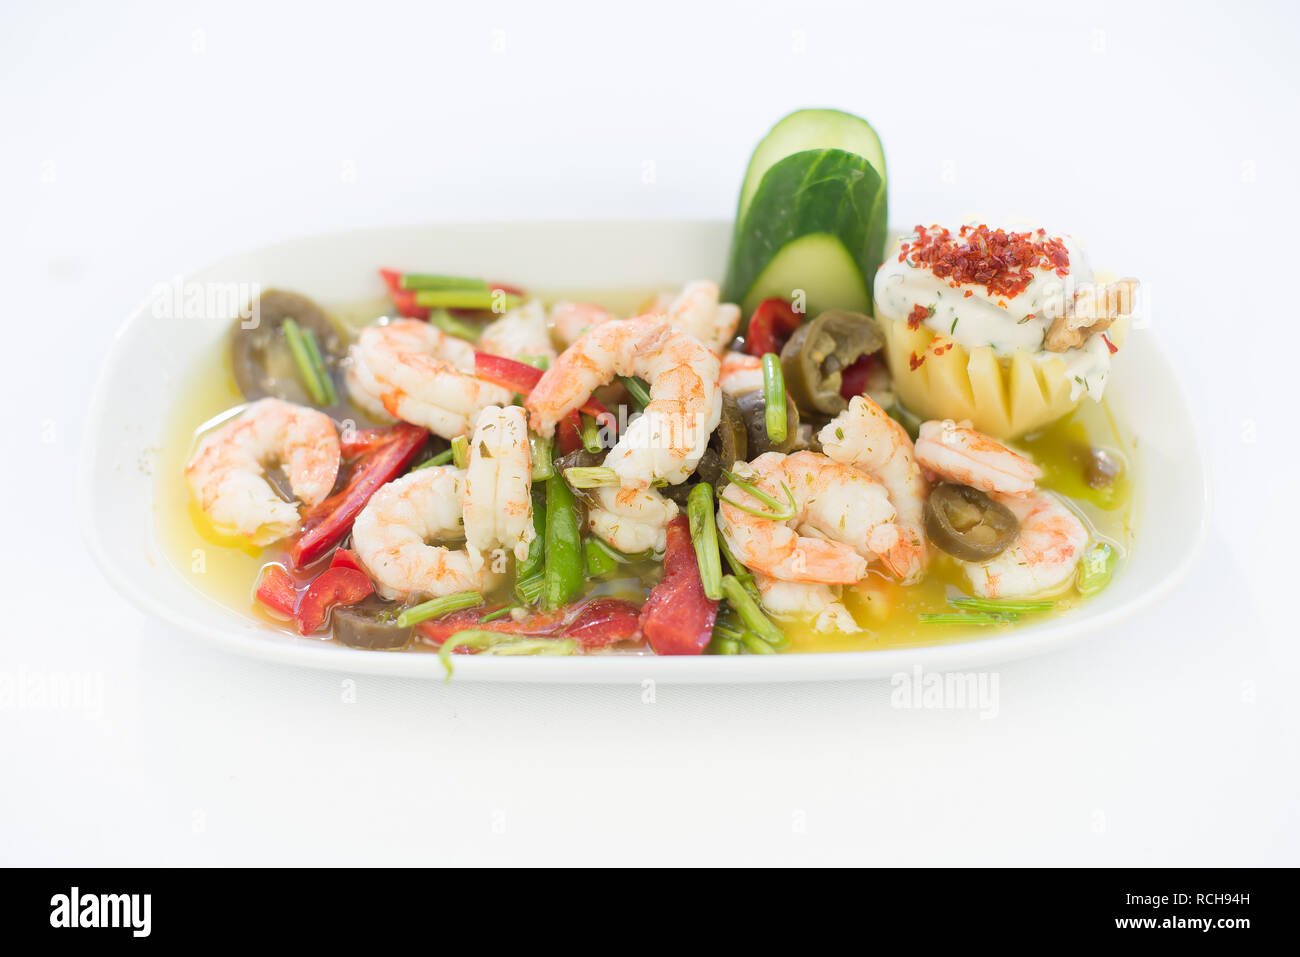 Marinated Shrimp appetizer salad. Delicious tasty yummy shrimp appetizer. Shrimp dish on isolated white background. Seafood appetizer. Stock Photo